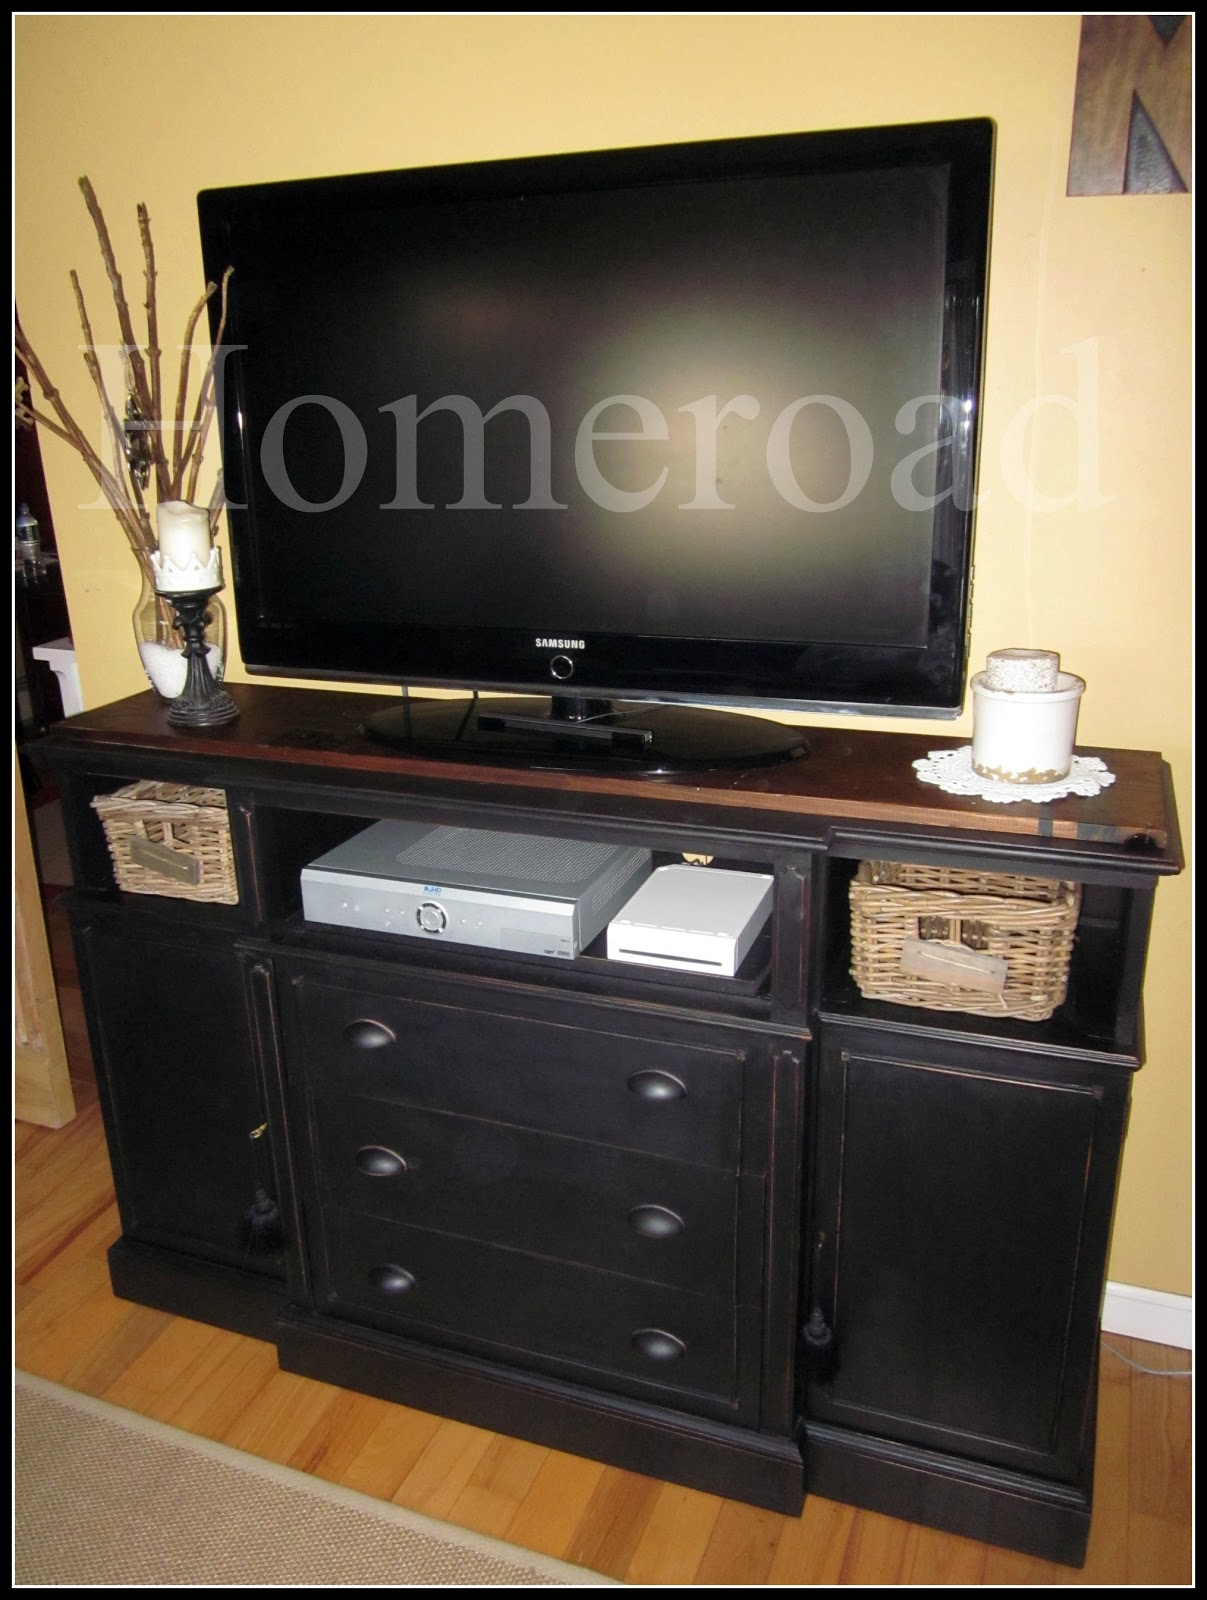 Homeroad: Finishing the China Cabinet TV Stand (part 3)